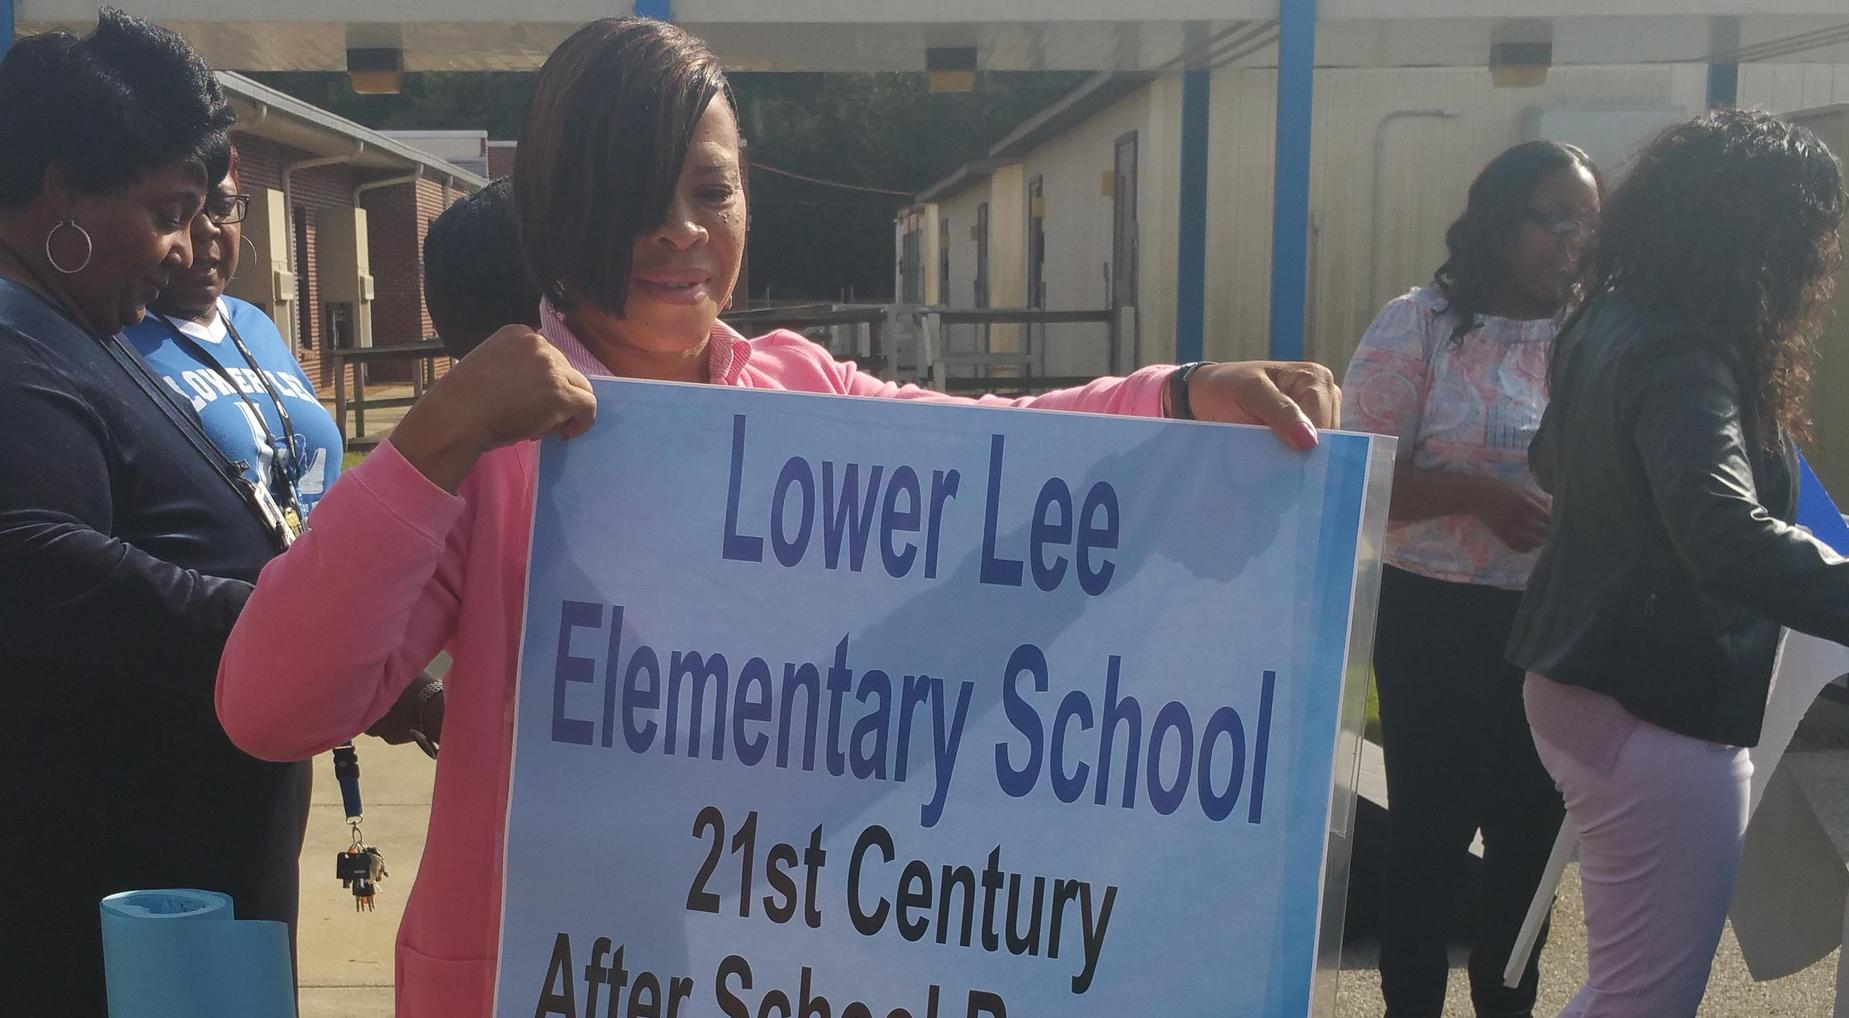 Lower Lee Elementary school event